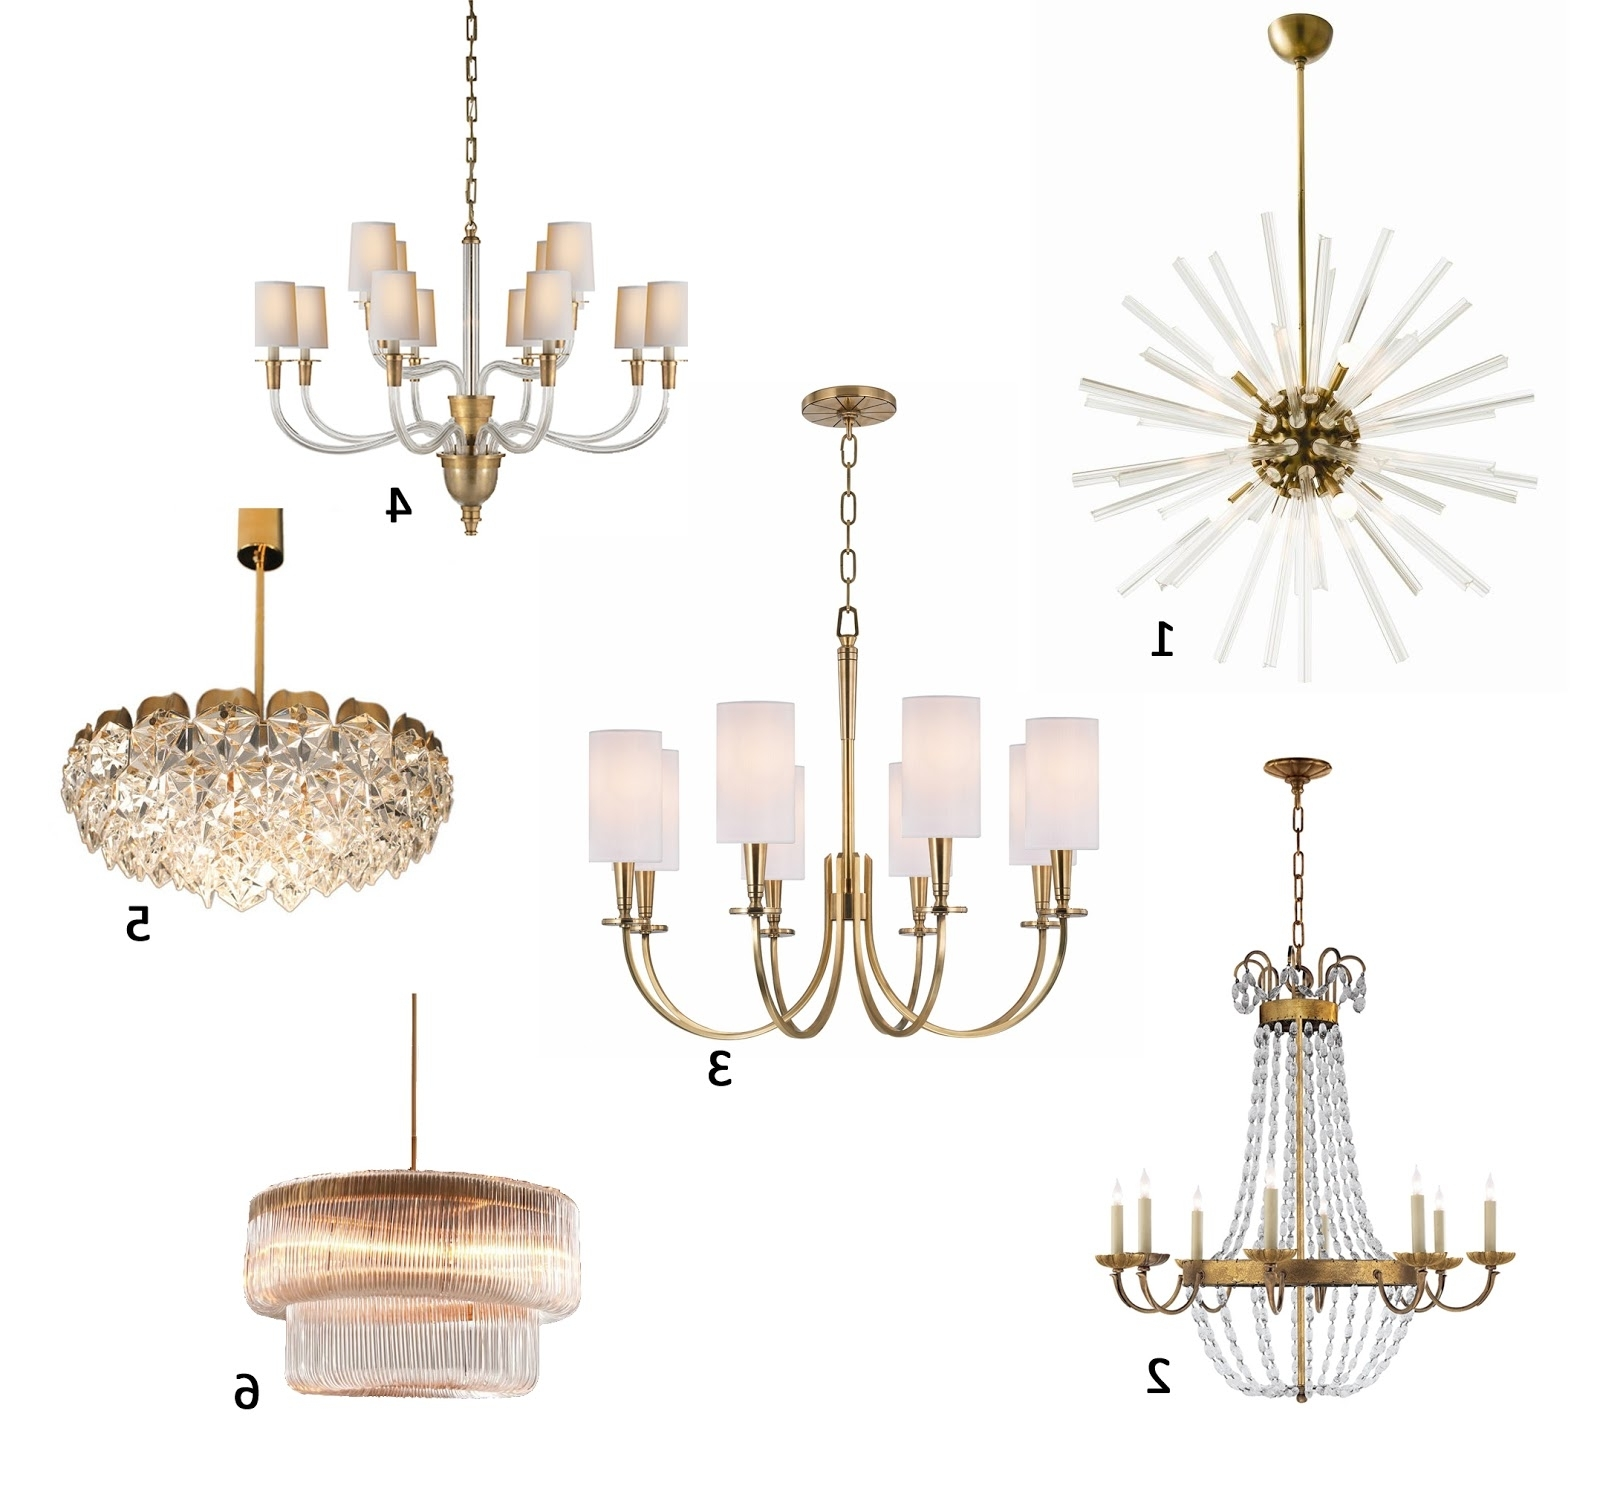 Am Dolce Vita: A Roundup Of My Favourite Brass Chandeliers Within Most Recent Traditional Brass Chandeliers (Gallery 9 of 20)